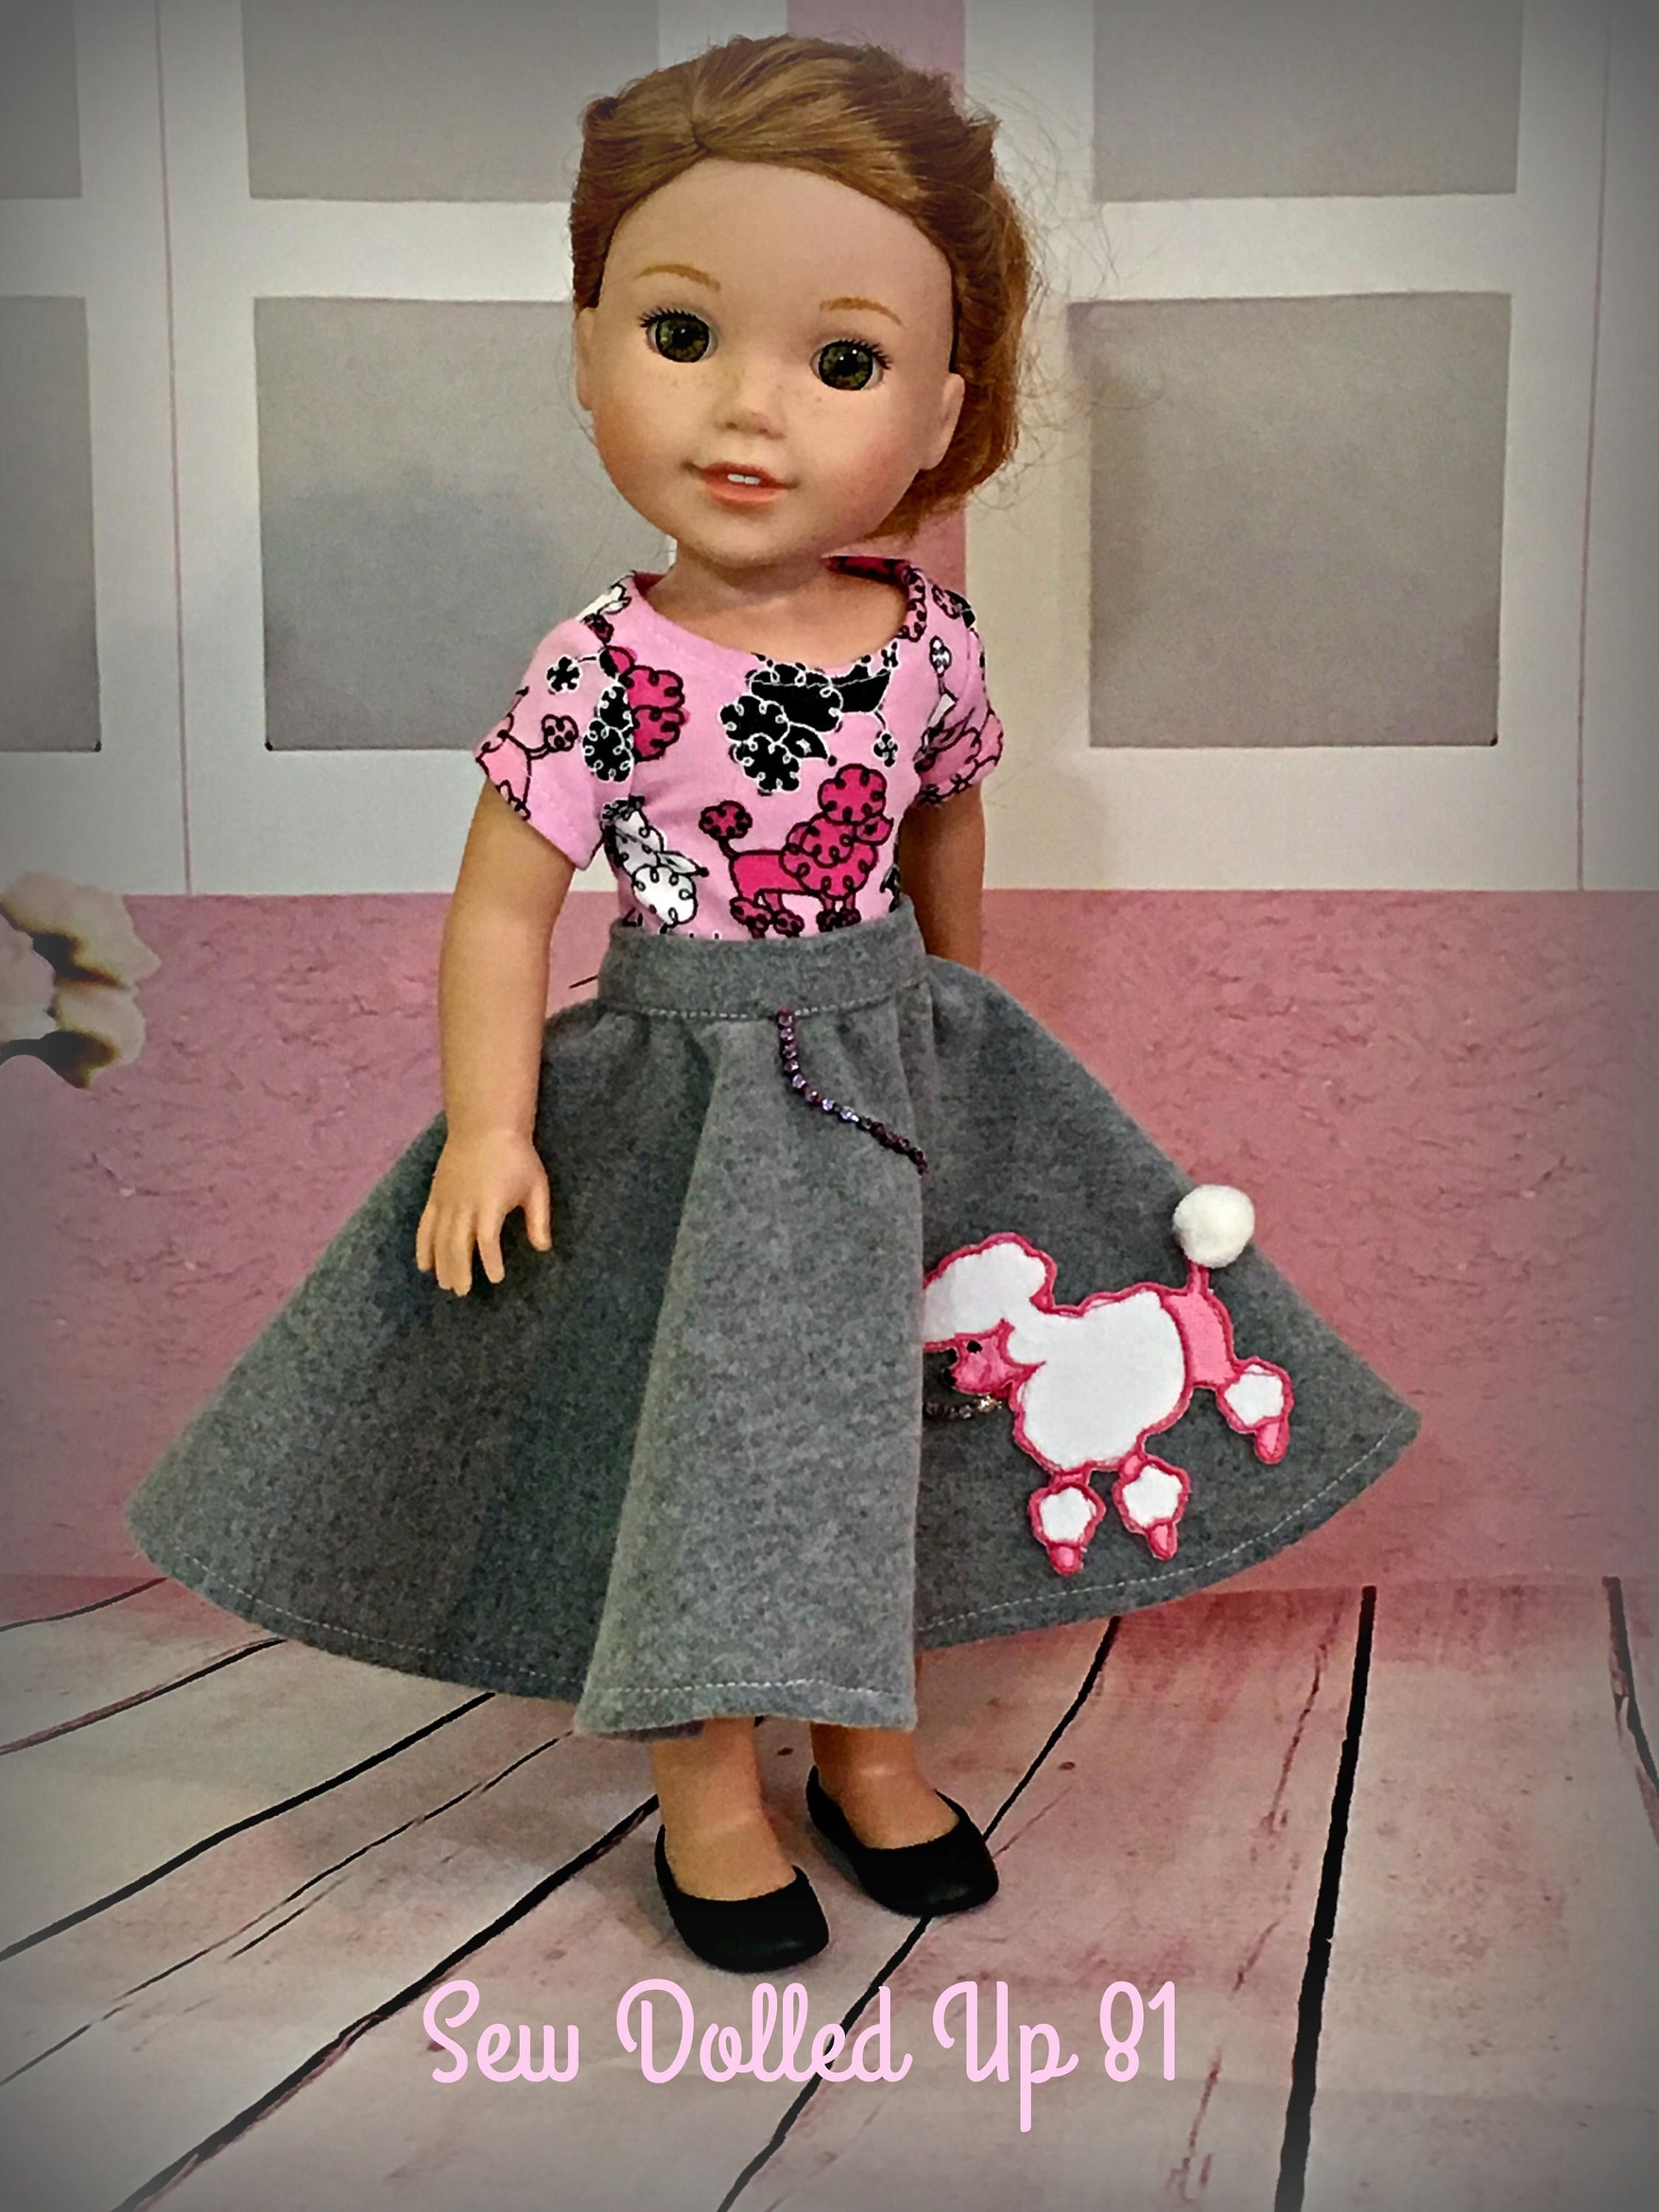 """Pink and Black 50s Poodle Skirt Outfit Fits Wellie Wishers 14.5/"""" American Girl"""